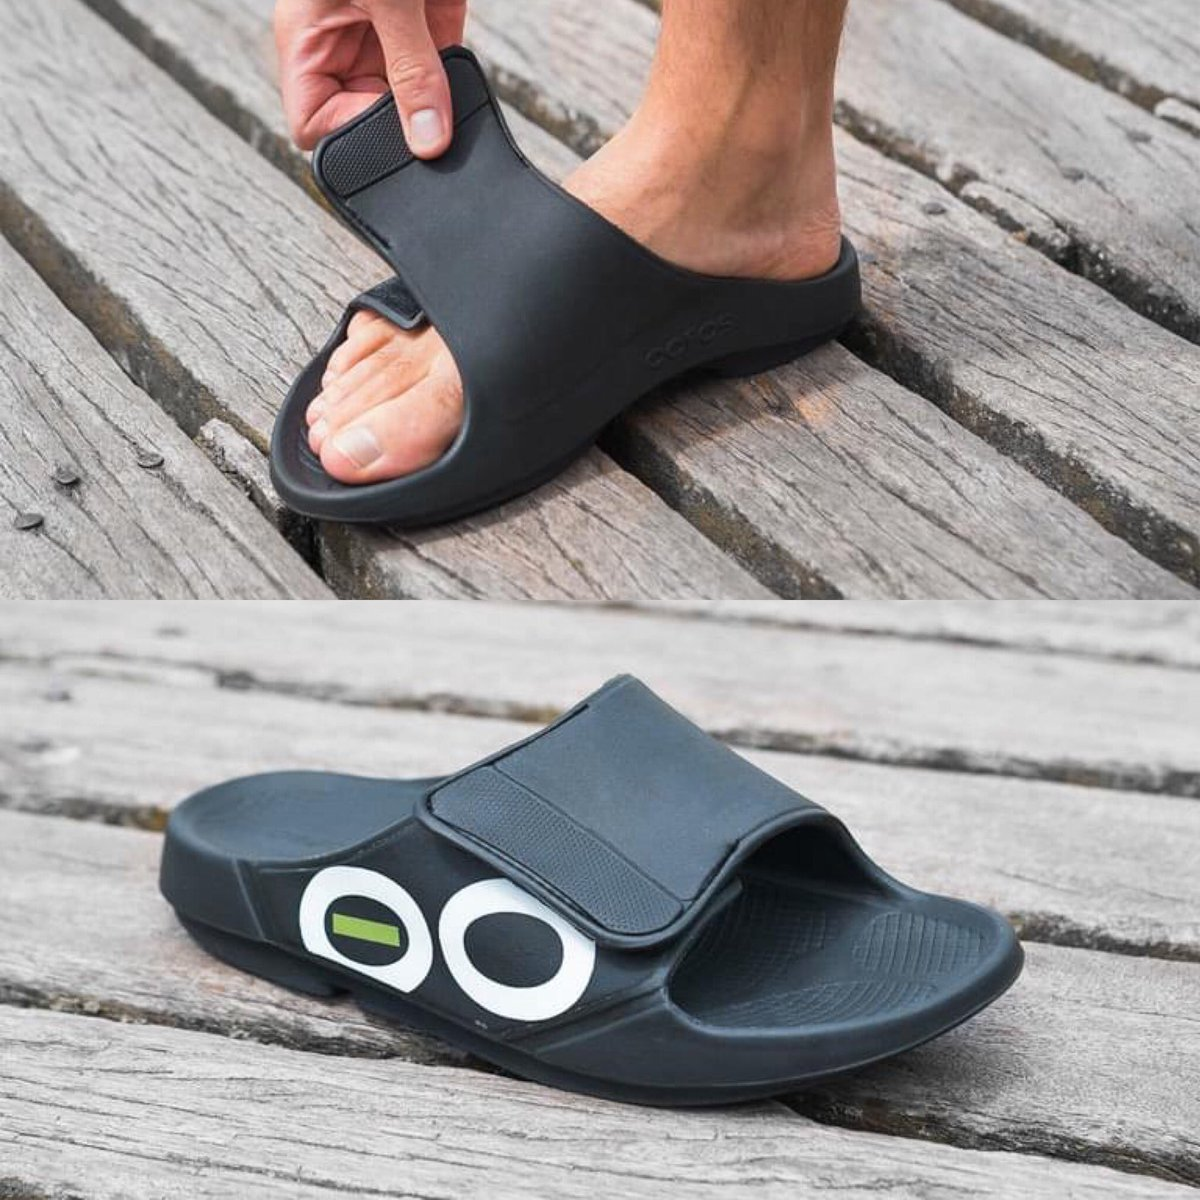 All new @oofos have arrived including the new OOAHH Flex Sandal!! Same great feel with an adjustable strap for improved fit! <br>http://pic.twitter.com/k1YoSYNMQc